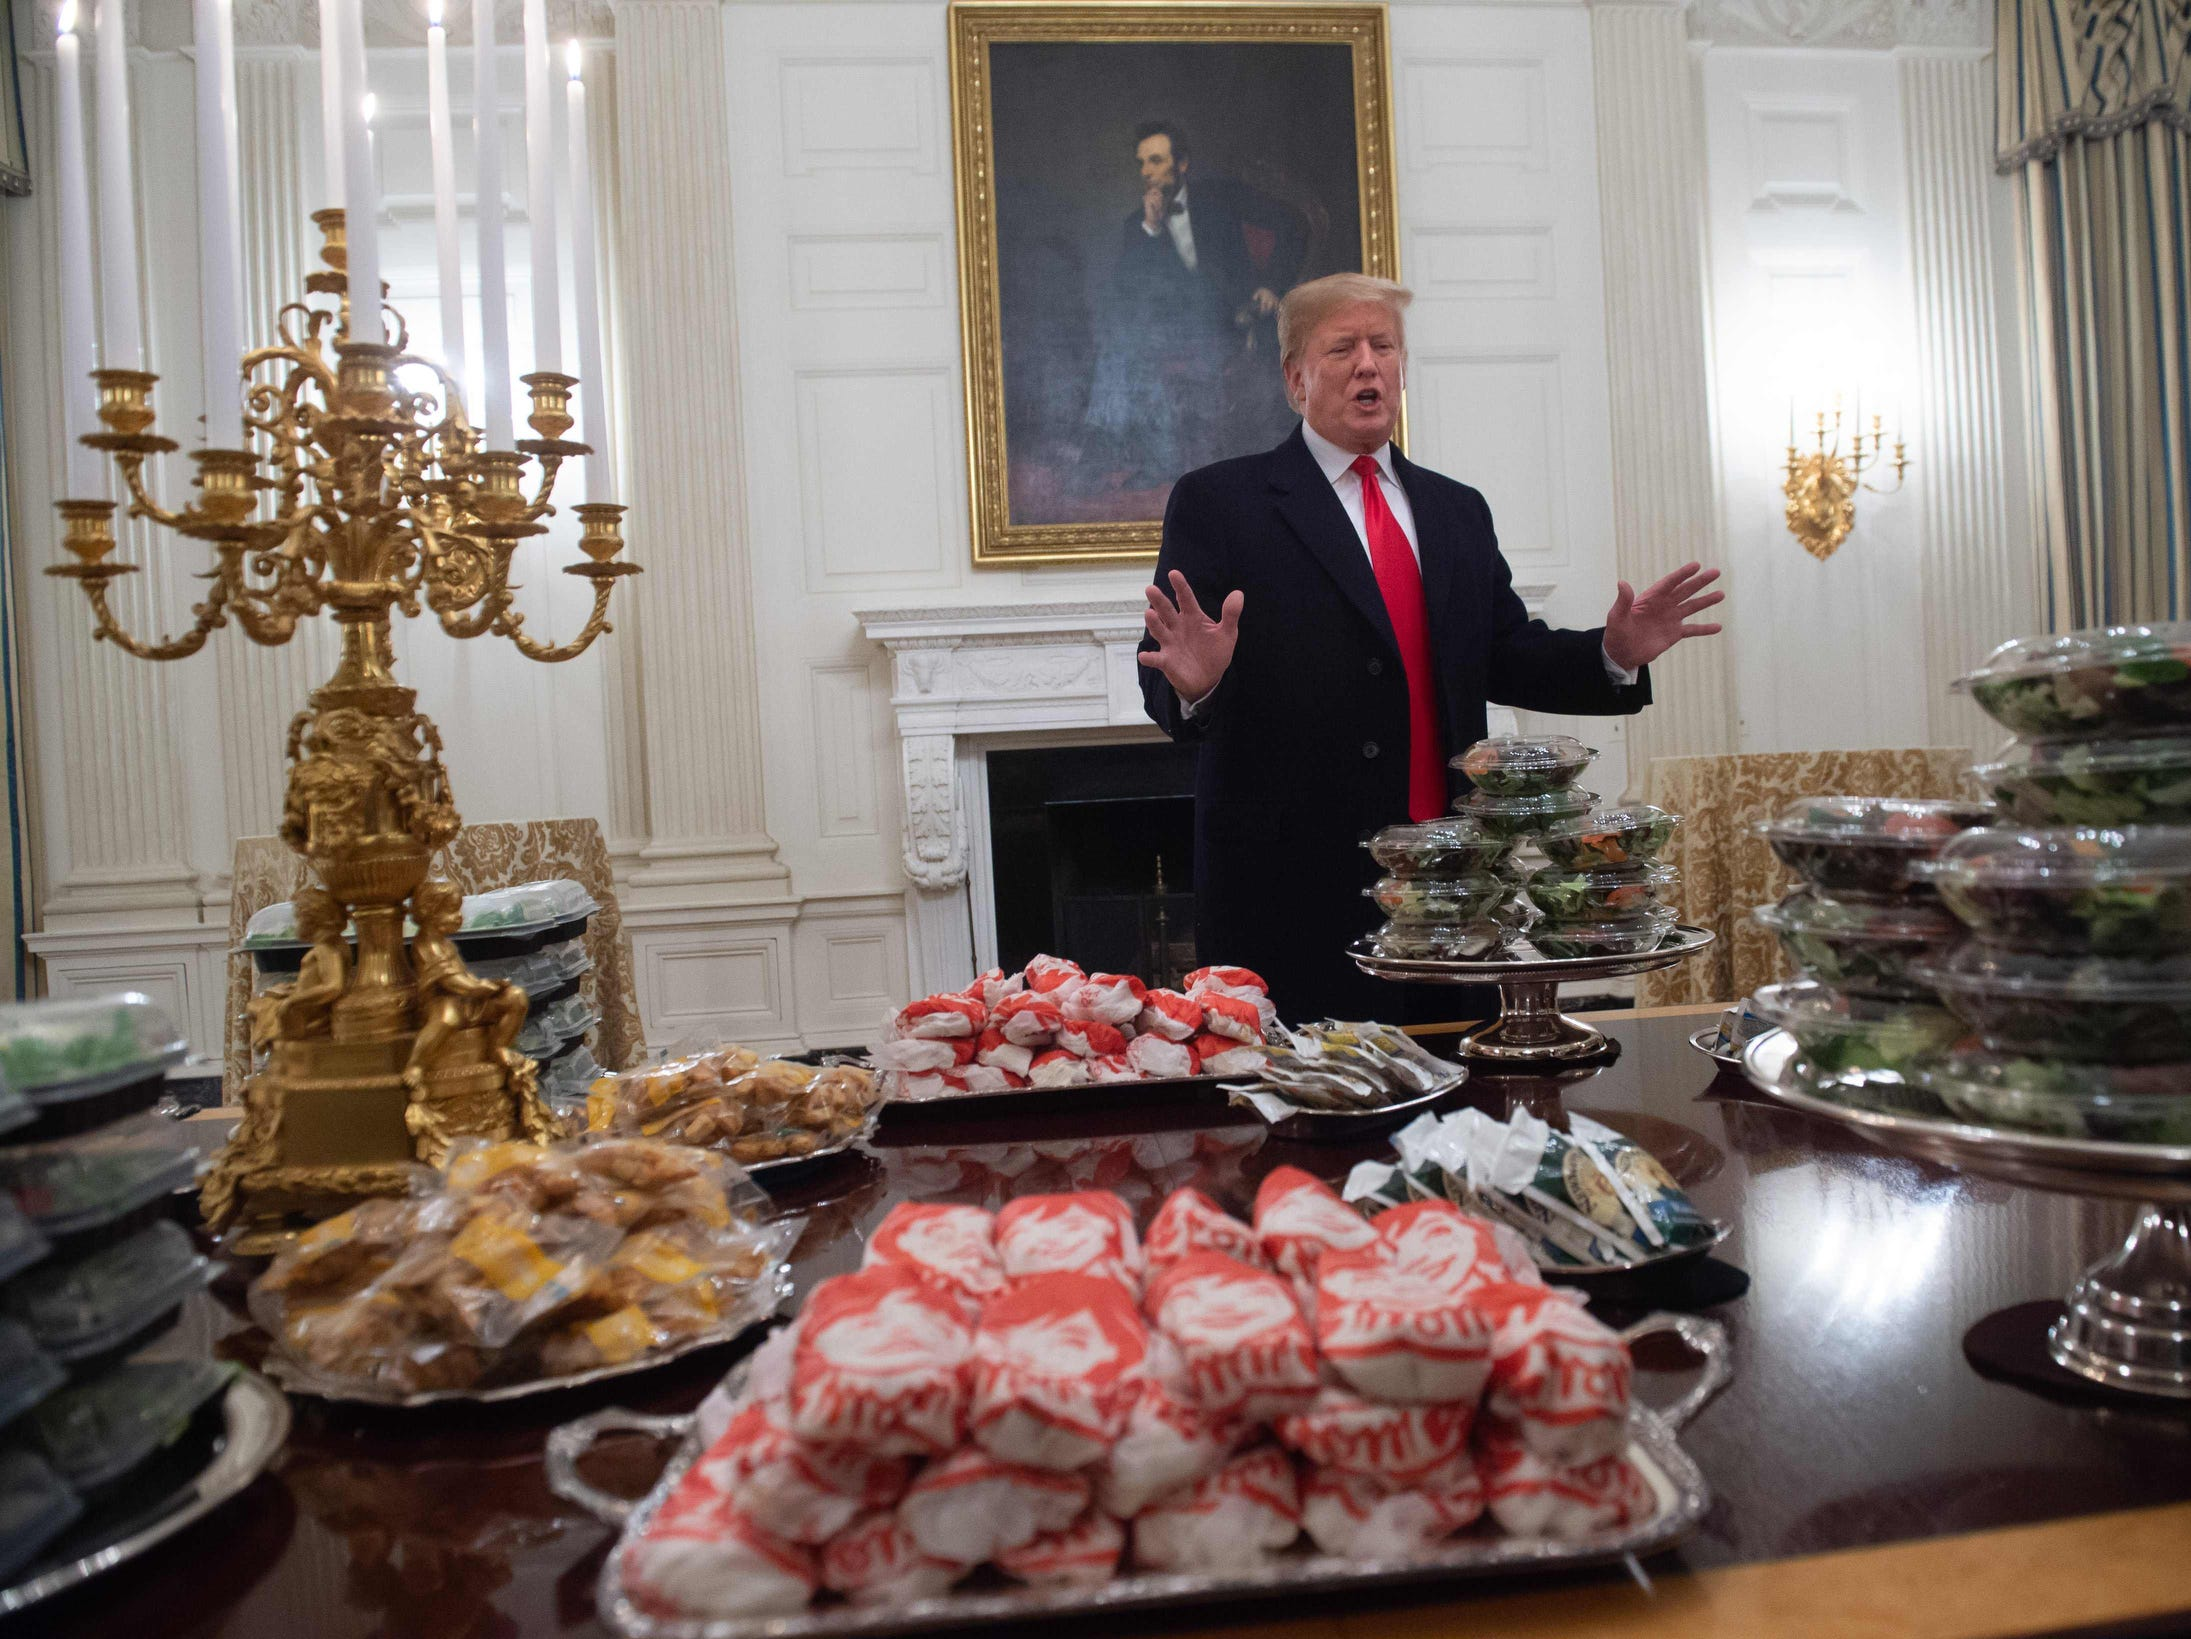 President Donald Trump speaks alongside fast food he purchased for a ceremony honoring the 2018 College Football Playoff National Champion Clemson Tigers in the State Dining Room of the White House in on  Jan. 14, 2019.  Trump says the White House chefs are furloughed due to the partial government shutdown.